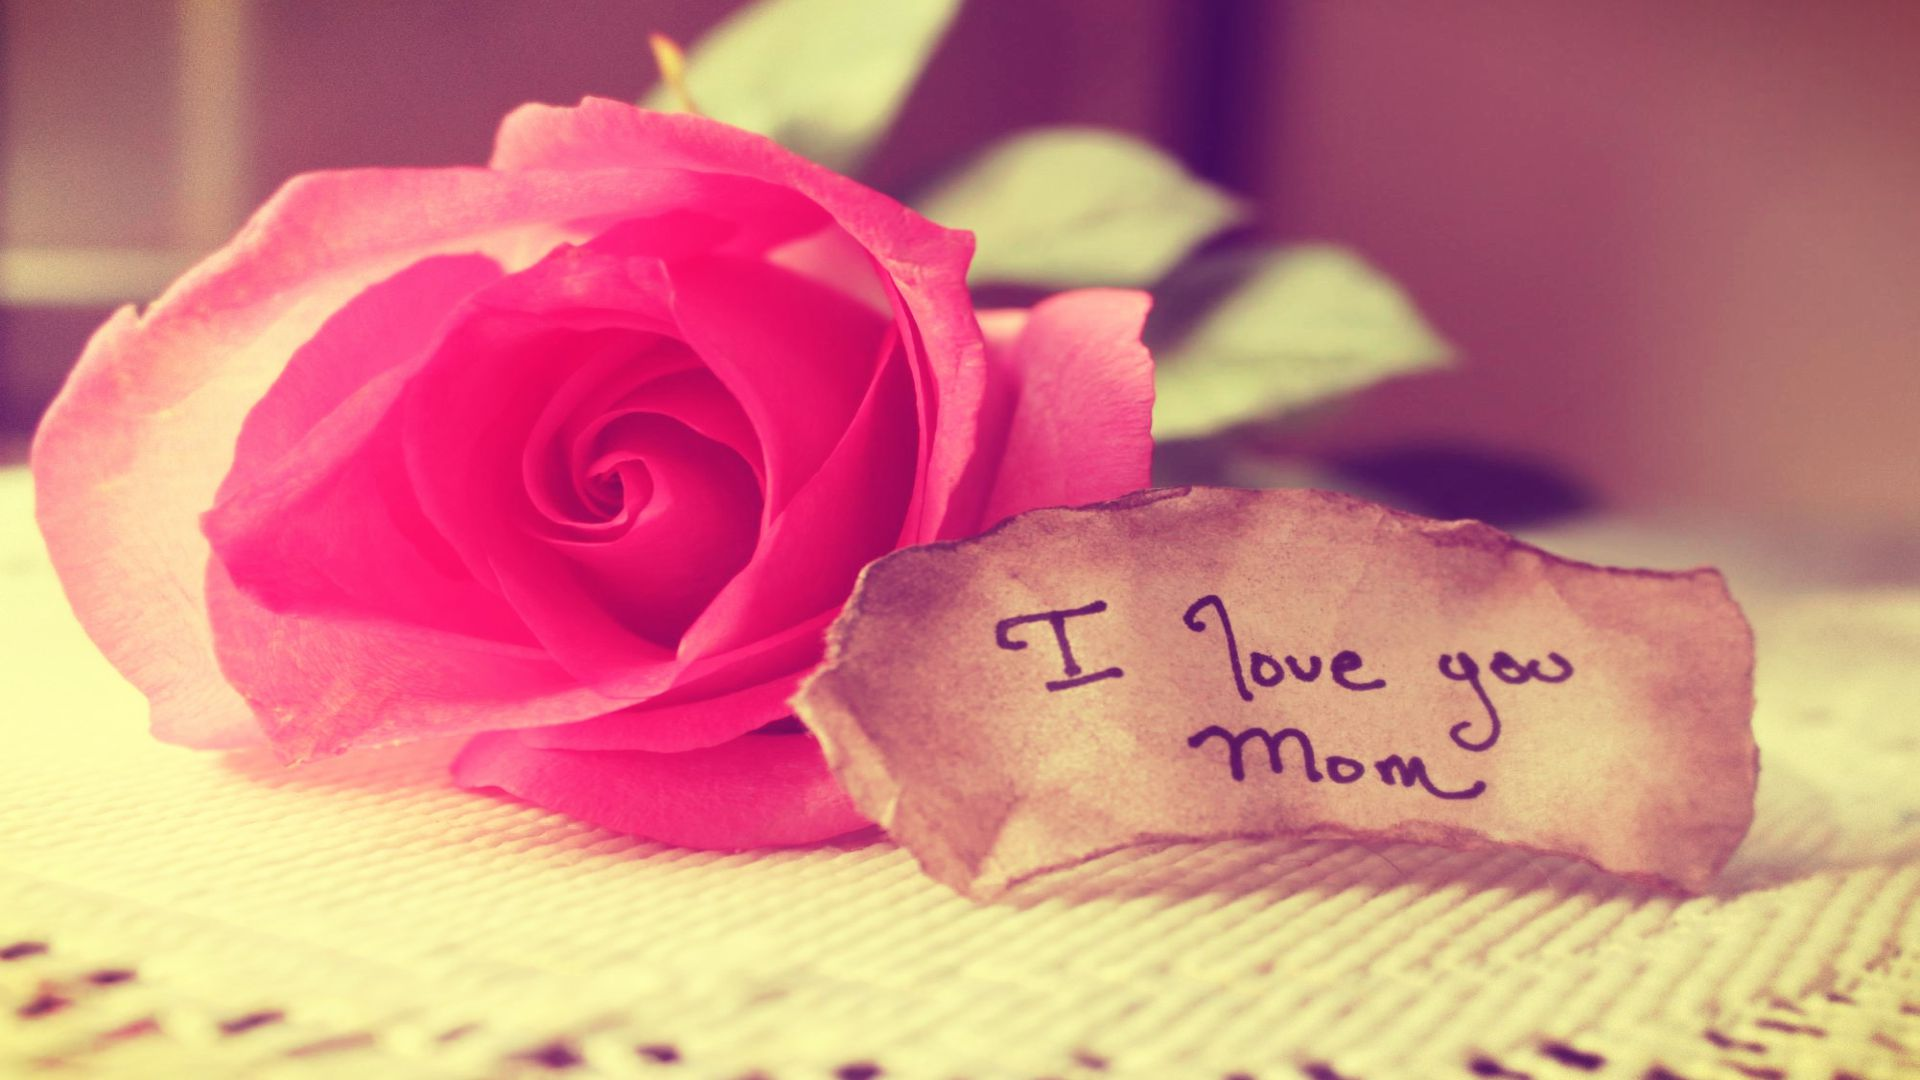 Wallpaper I Love You Mom : Happy Mother s Day 2014 - Wallpaper, High Definition, High Quality, Widescreen